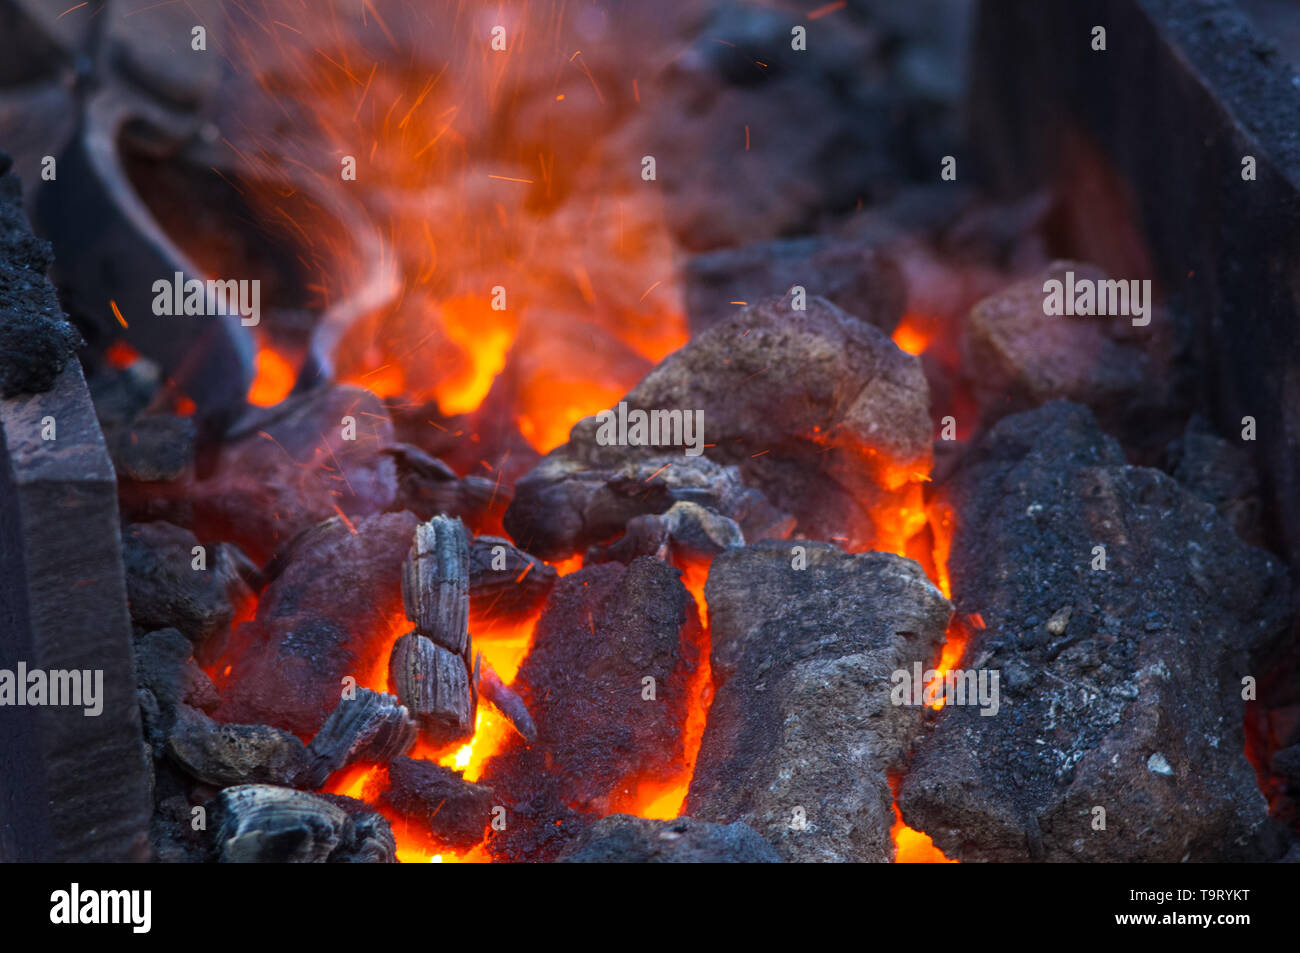 blacksmith furnace with burning coals, tools, and glowing hot metal workpieces, close-up - Stock Image